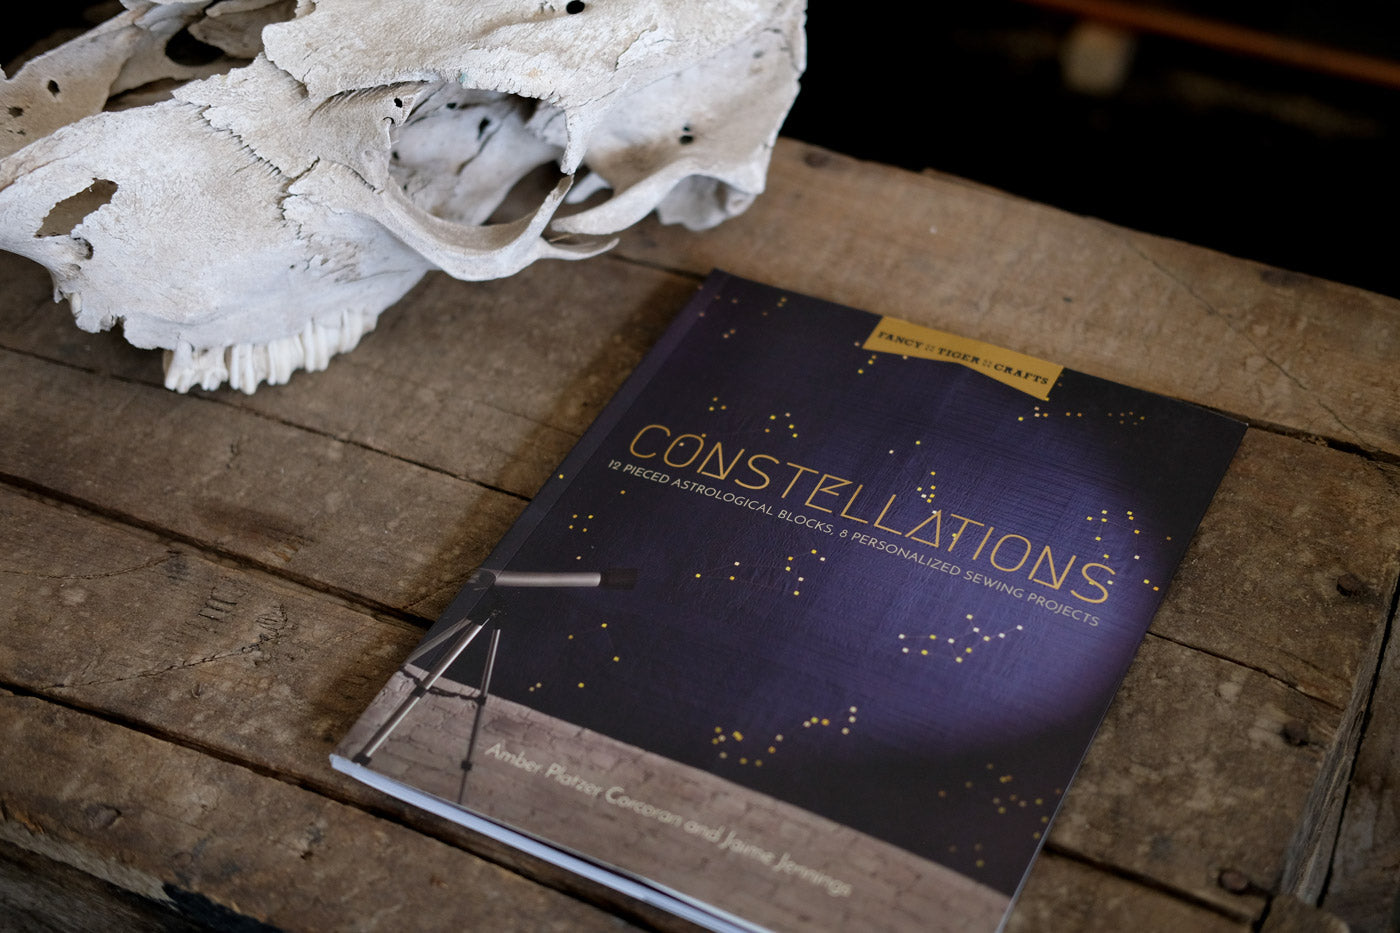 Constellations book sitting on a wooden table next to an animal skull